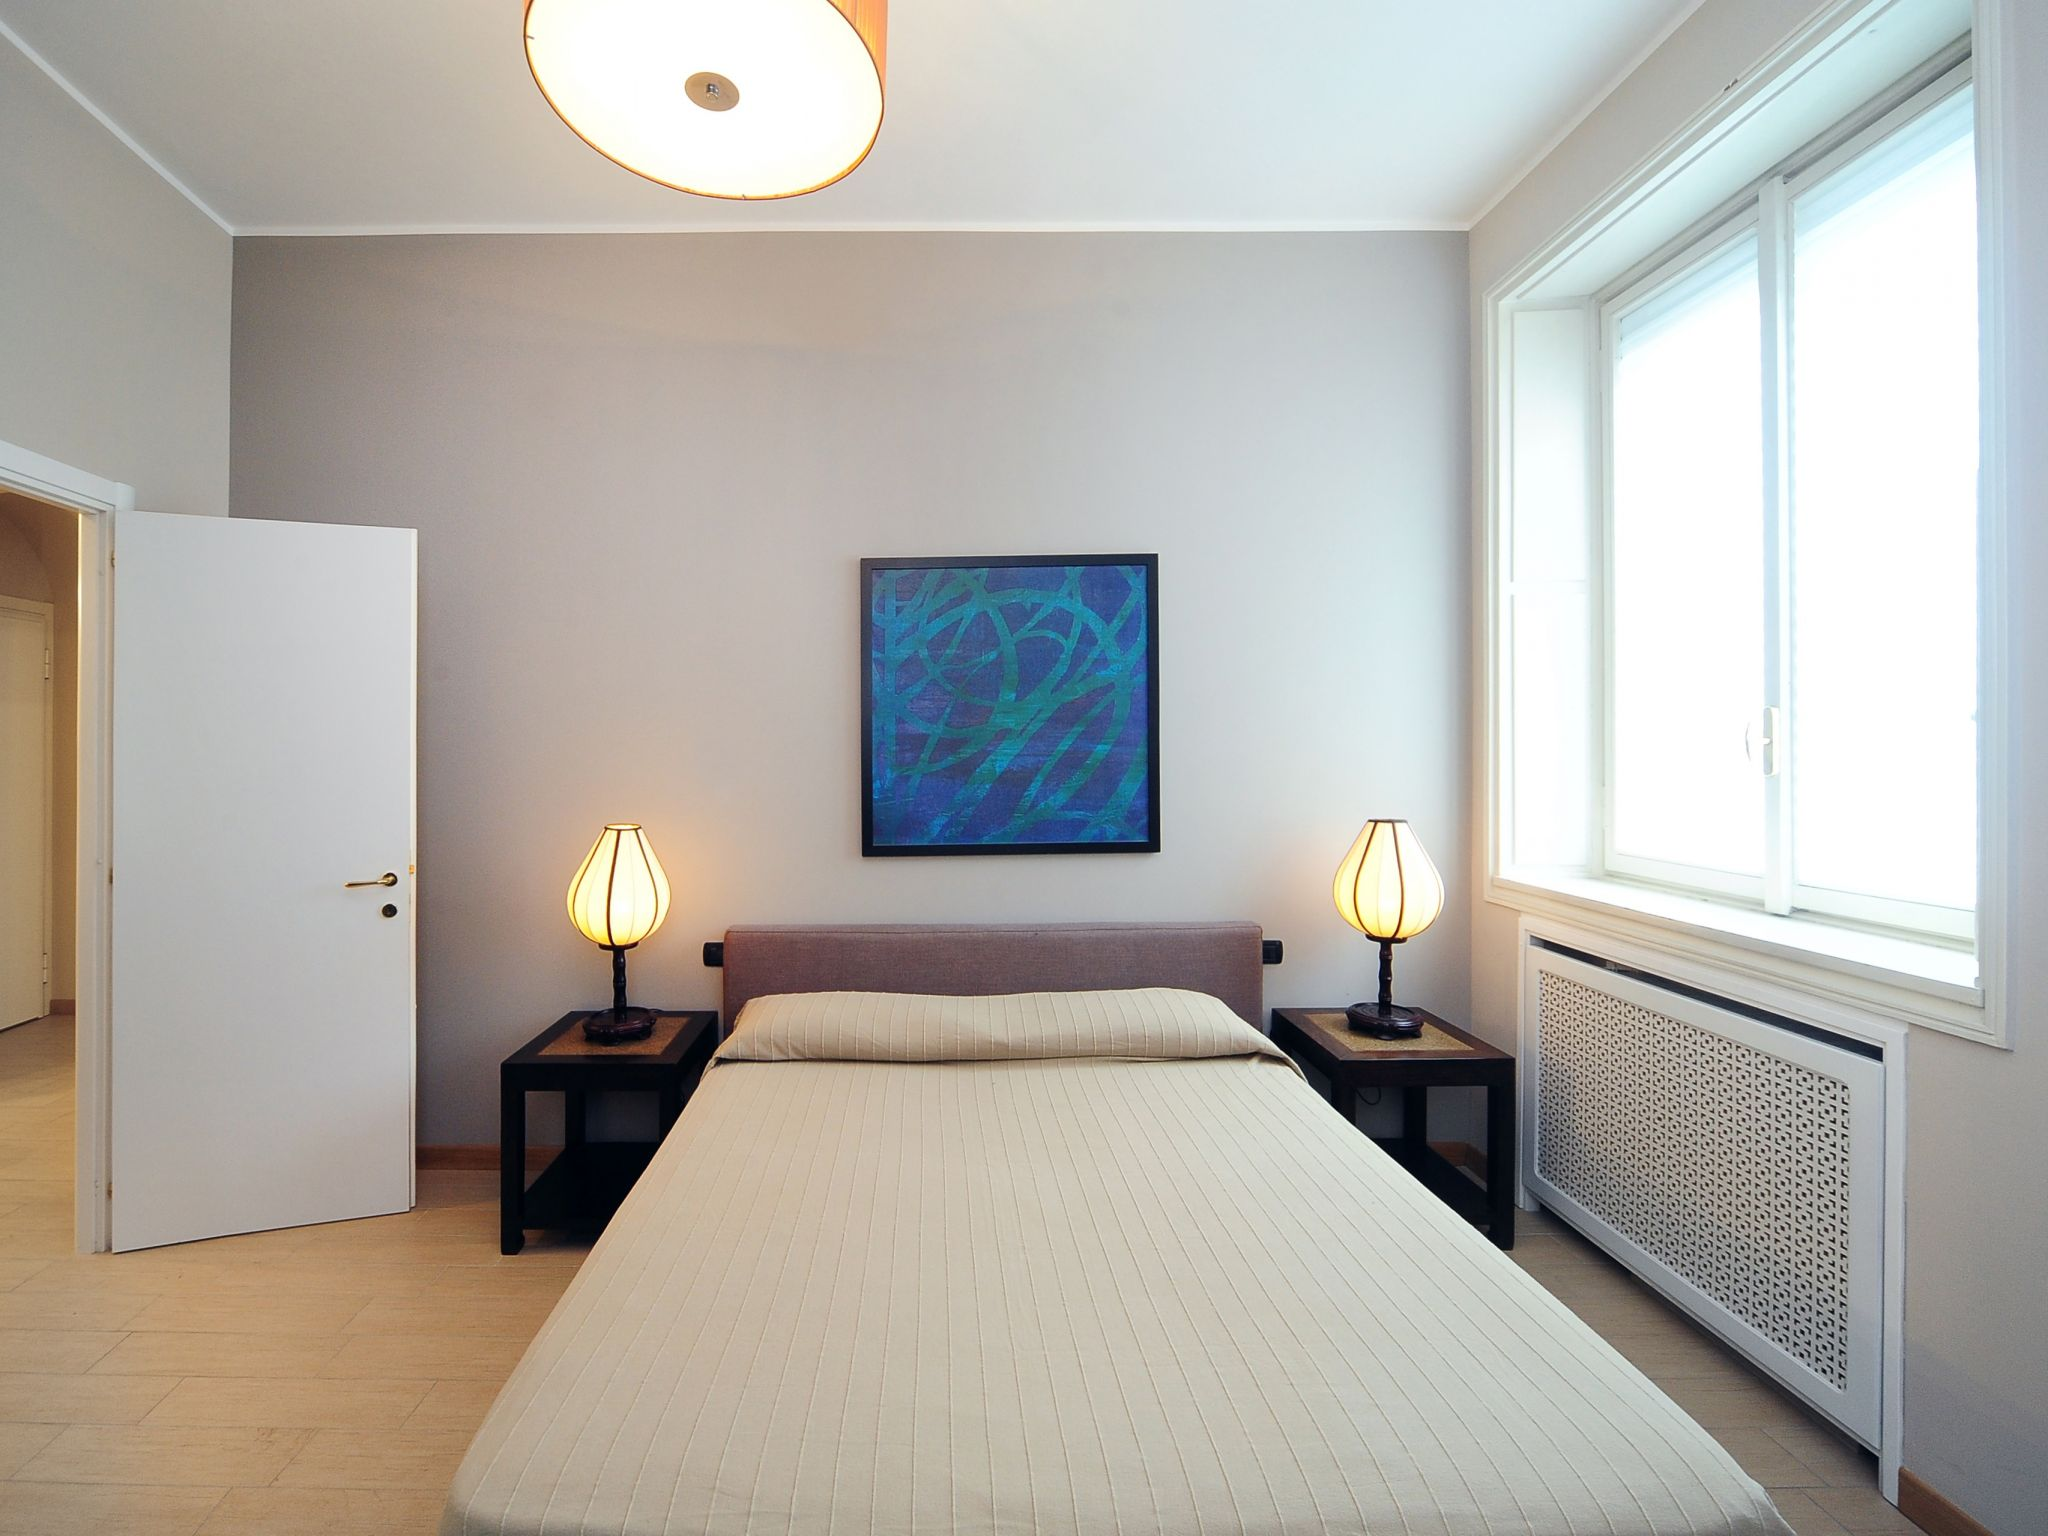 Urban District Apartments - Milan Old Town Central (2 BR)